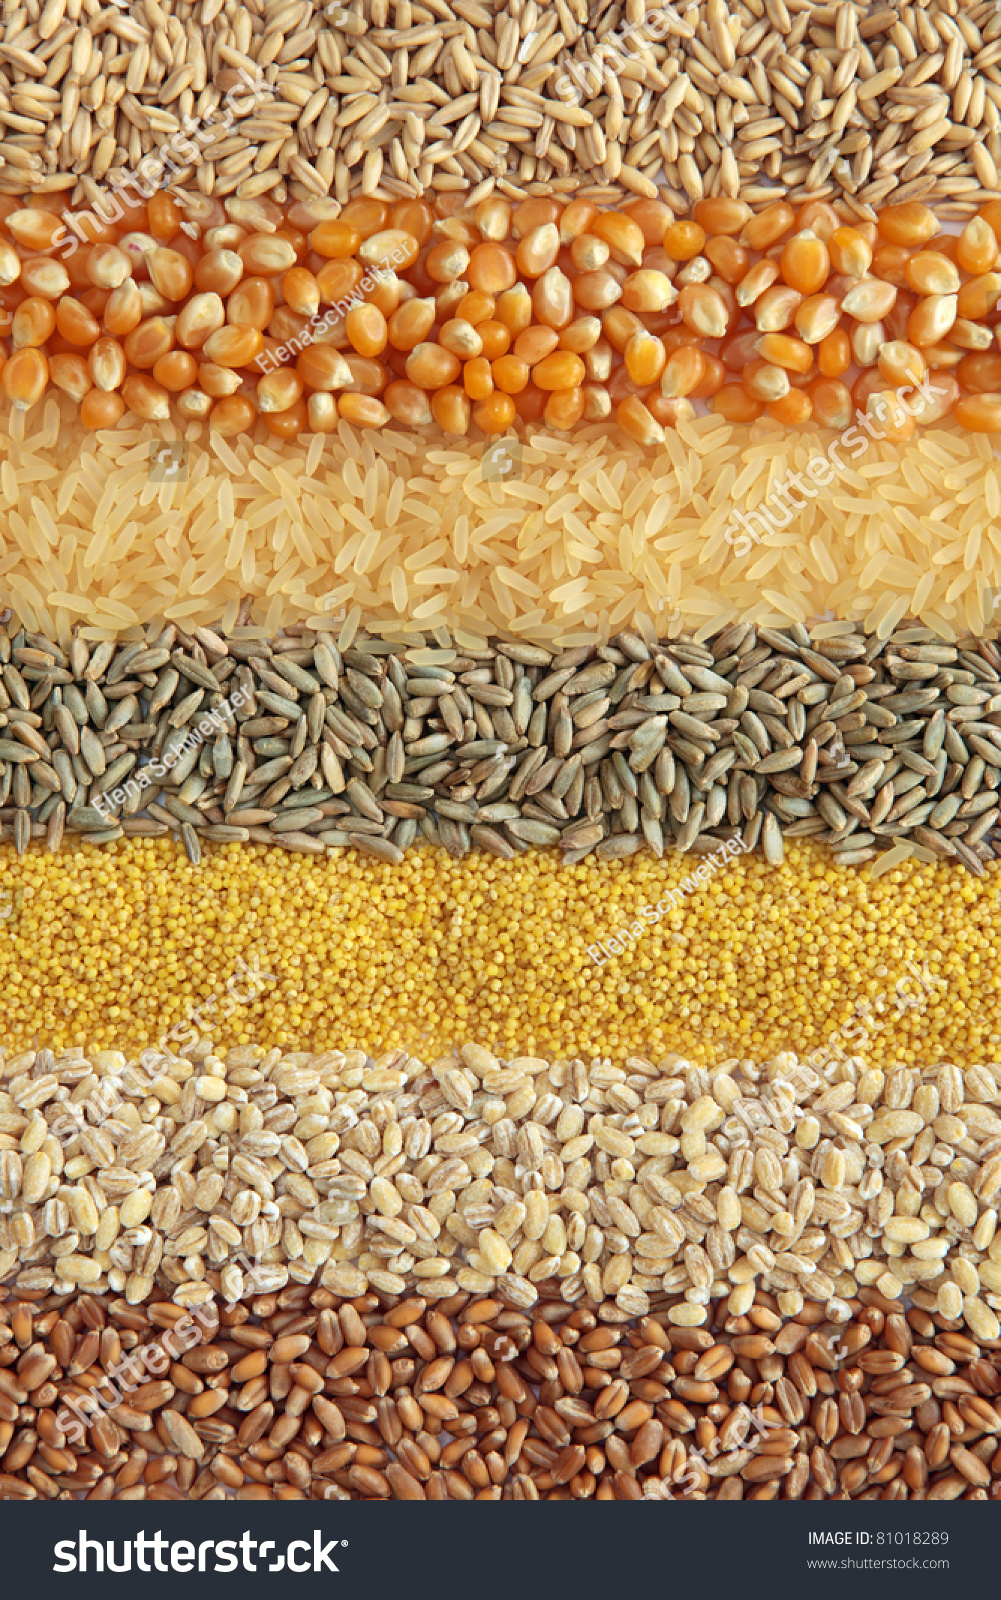 Cereals Wheat Barley Millet Rye Ricemaize Stock Photo ...